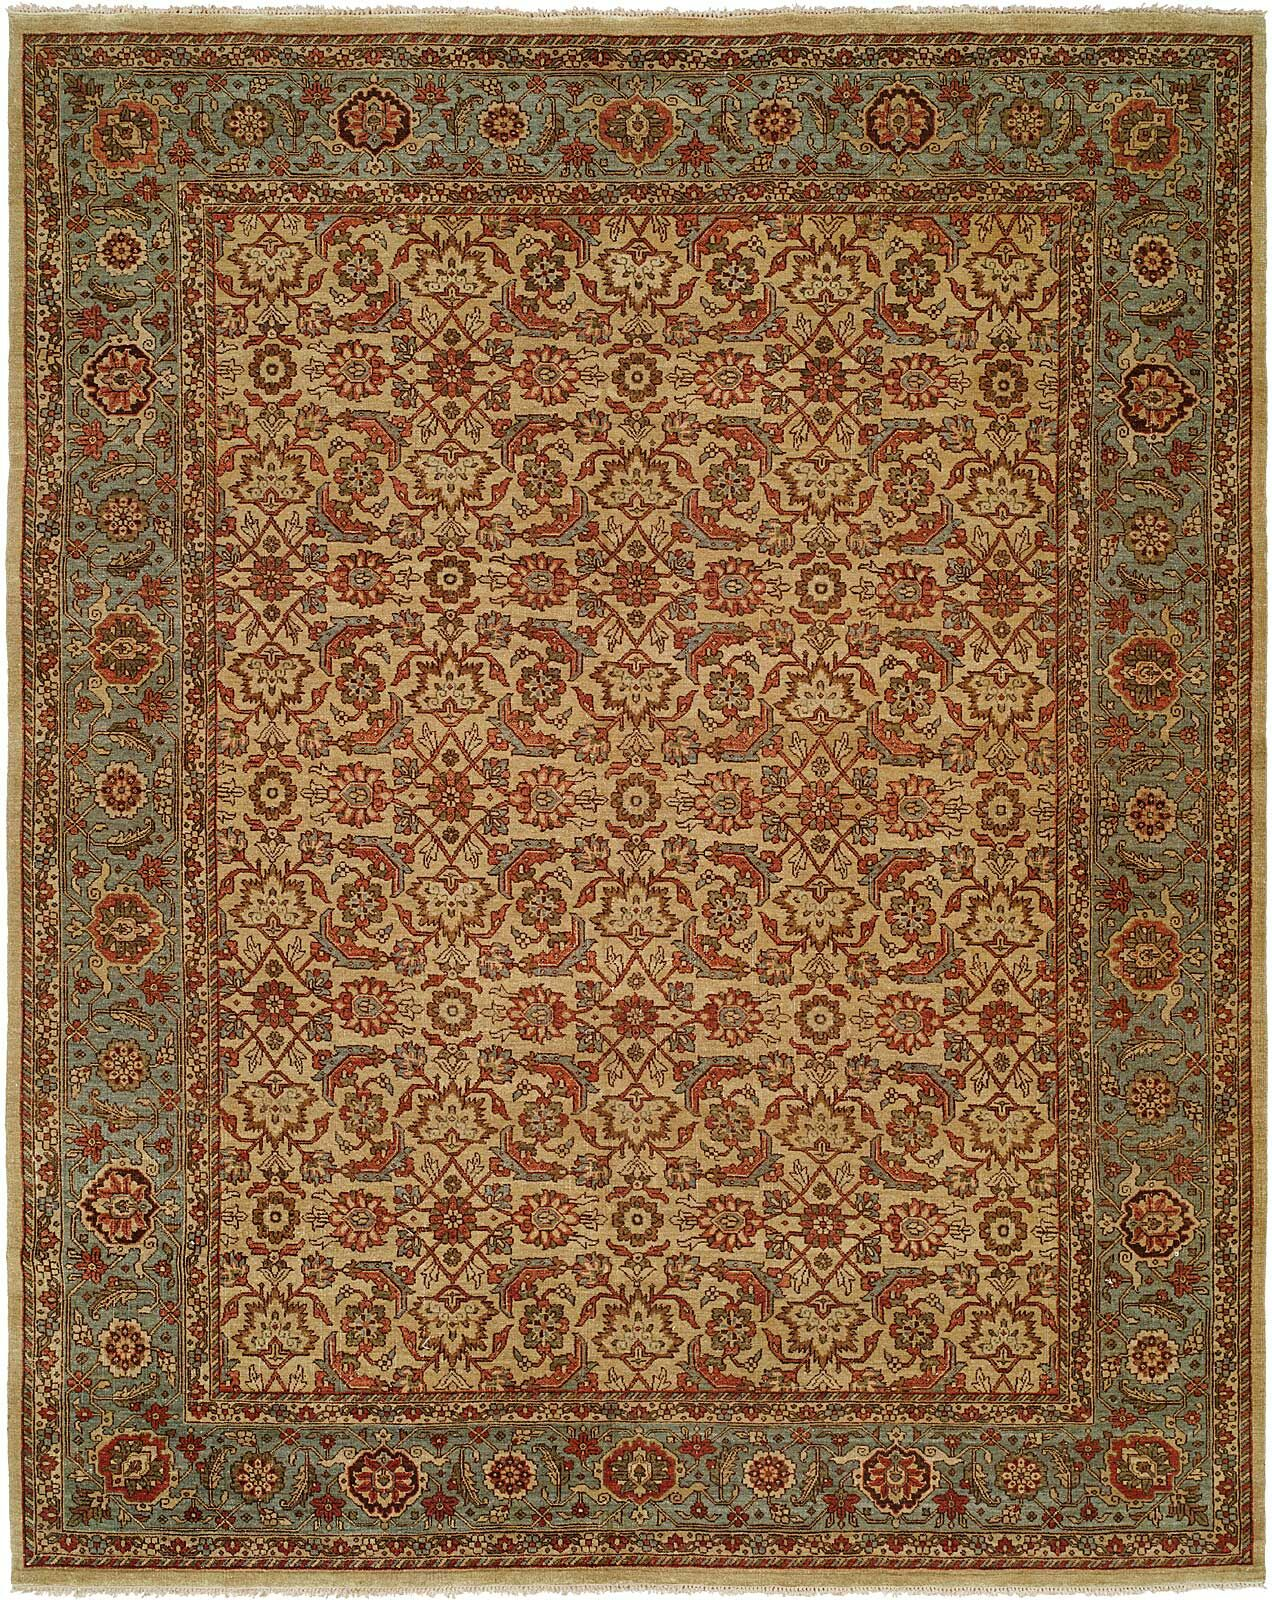 McCullom Hand Knotted Wool Ivory/Blue Area Rug Rug Size: Runner 2'6